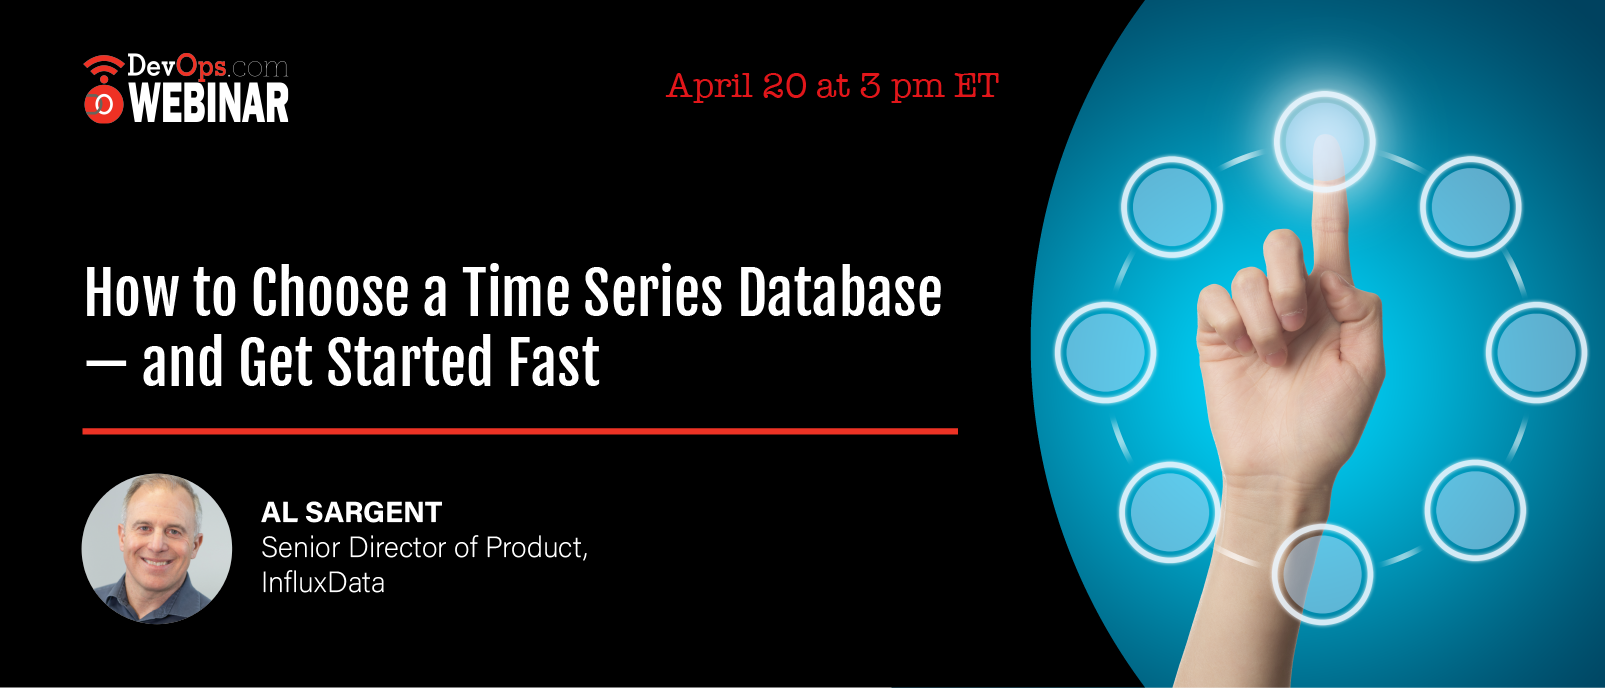 How to Choose a Time Series Database — and Get Started Fast